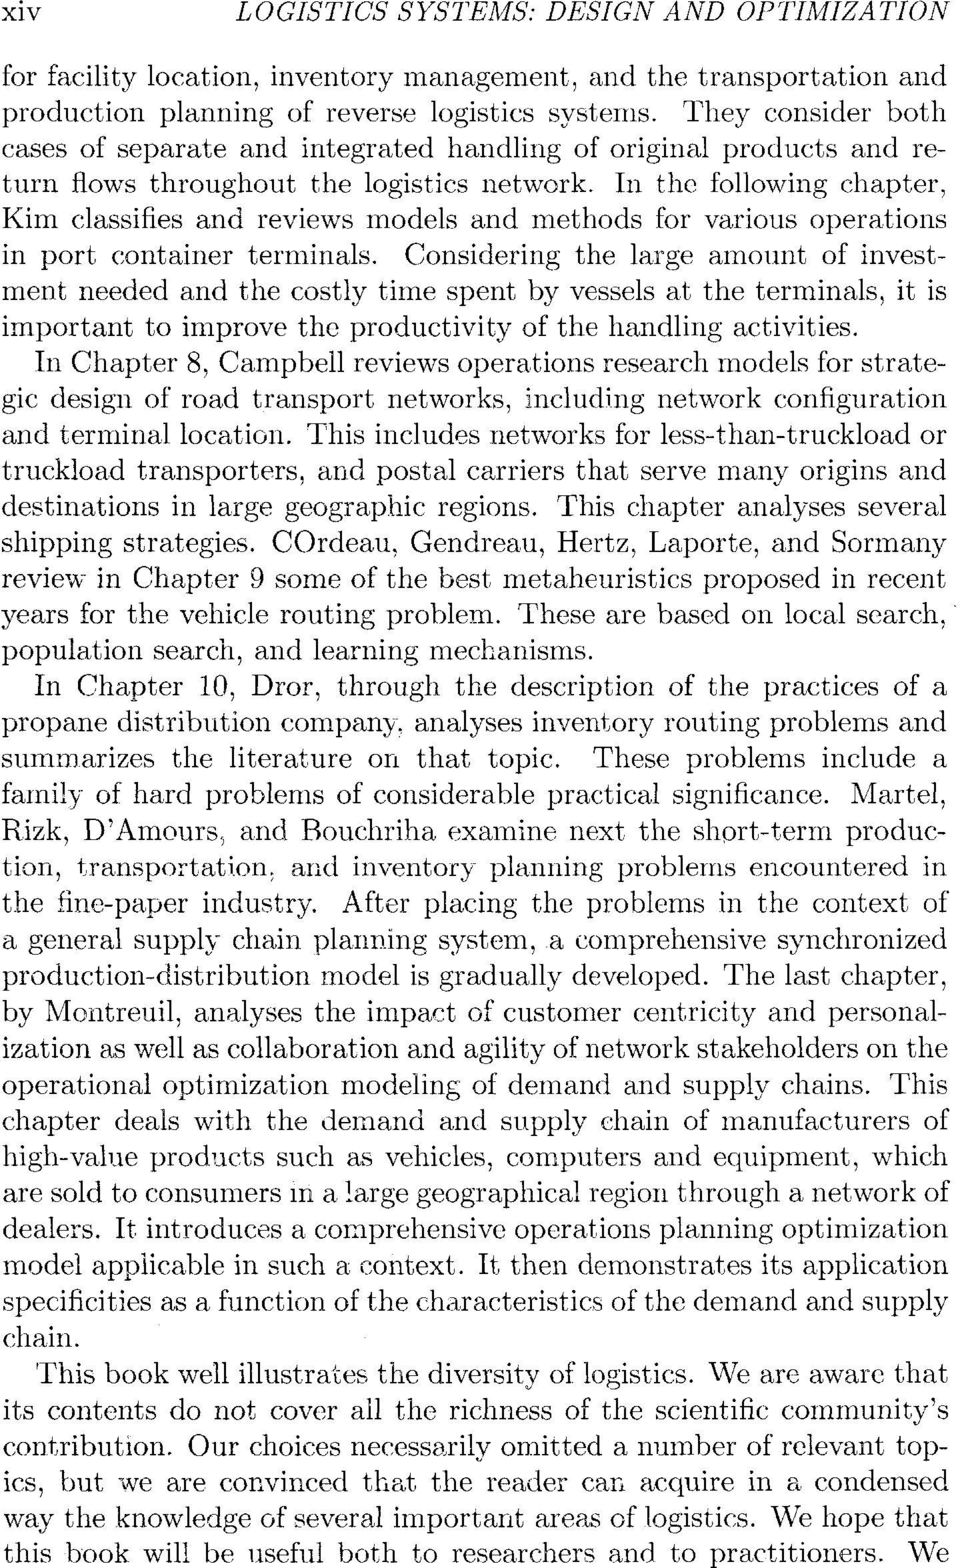 In the following chapter, Kim classifies and reviews models and methods for various operations in port container terminals.